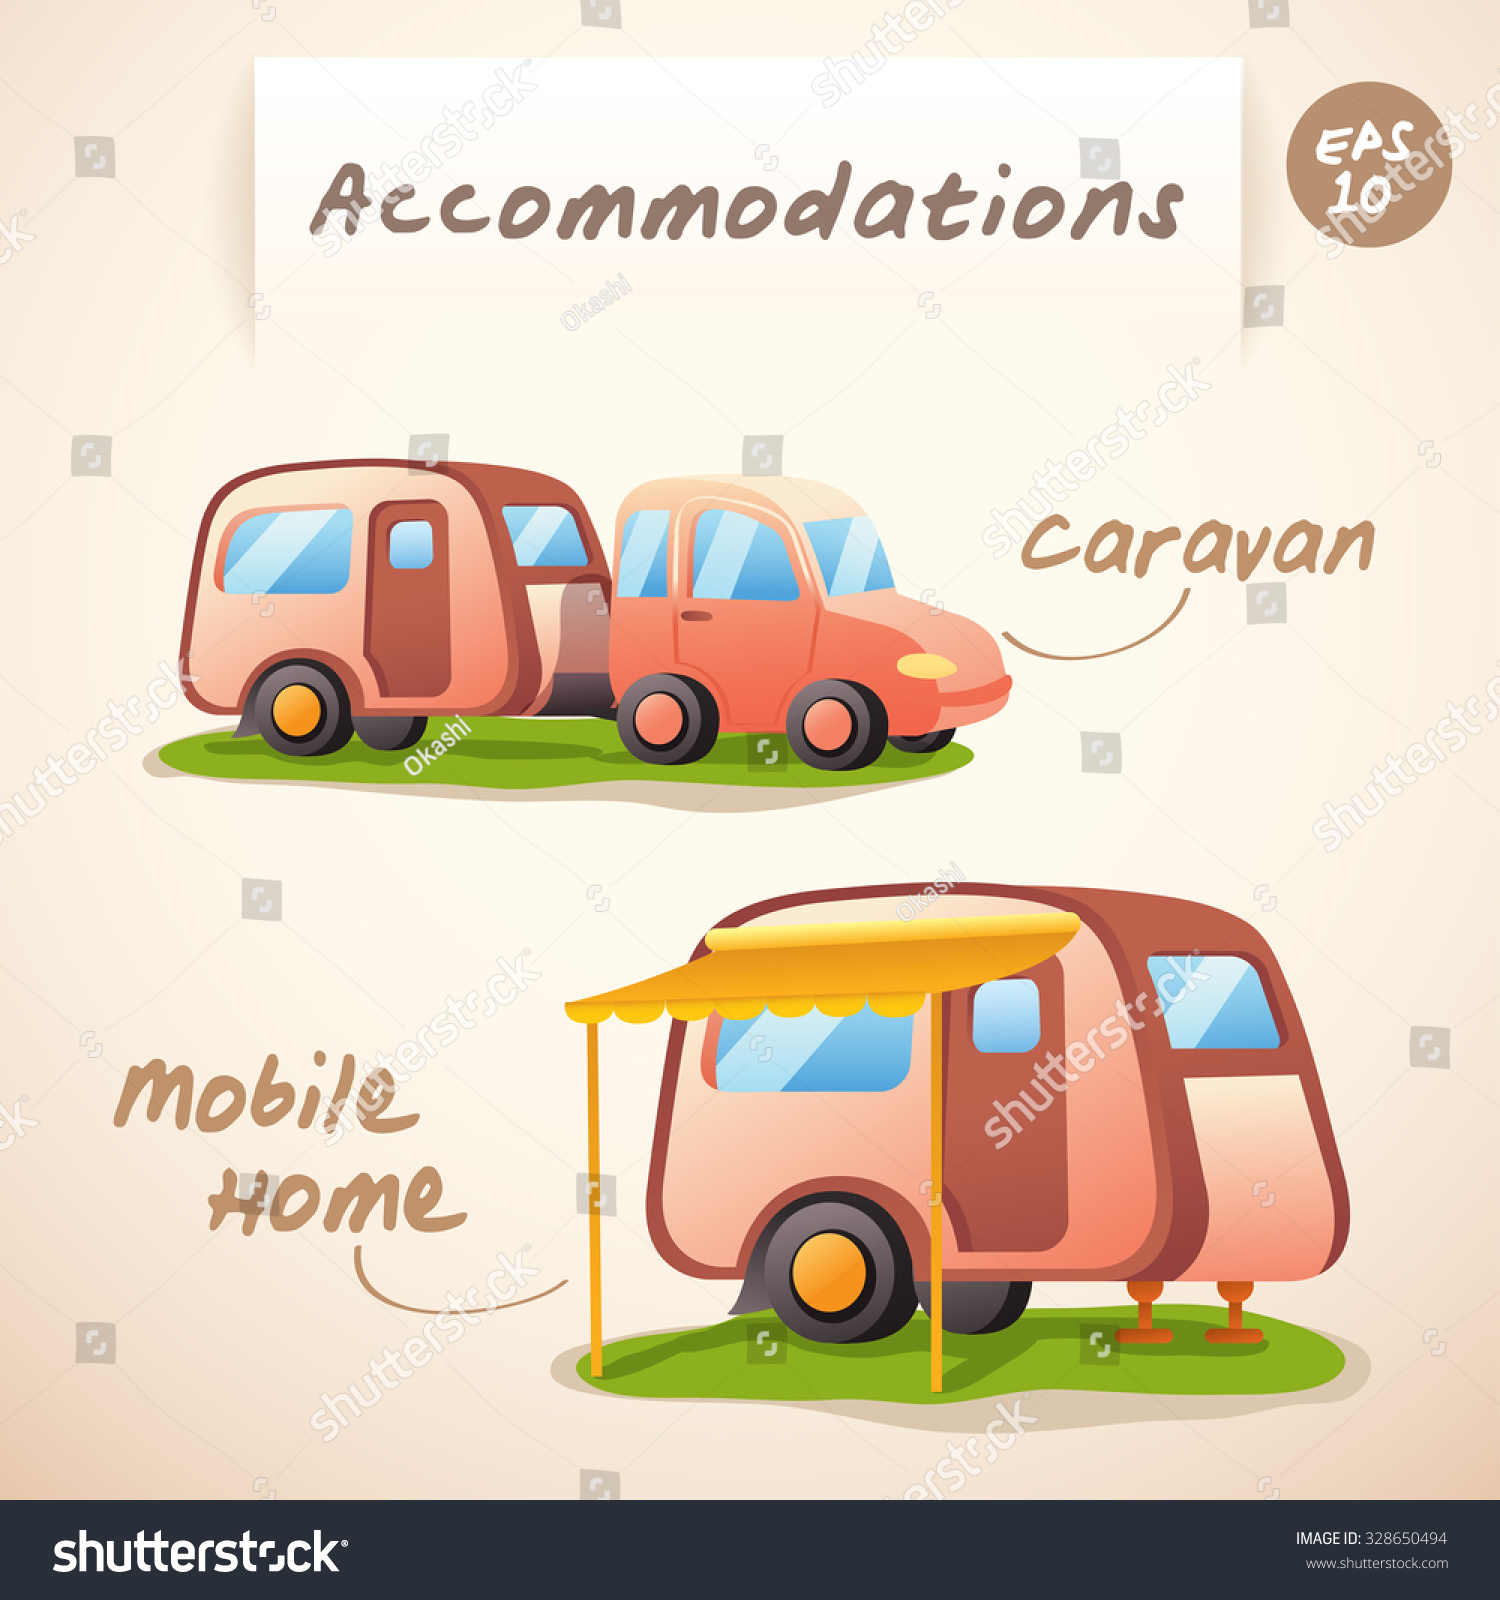 Accommodations Caravan And Mobile Home Vector Illustration